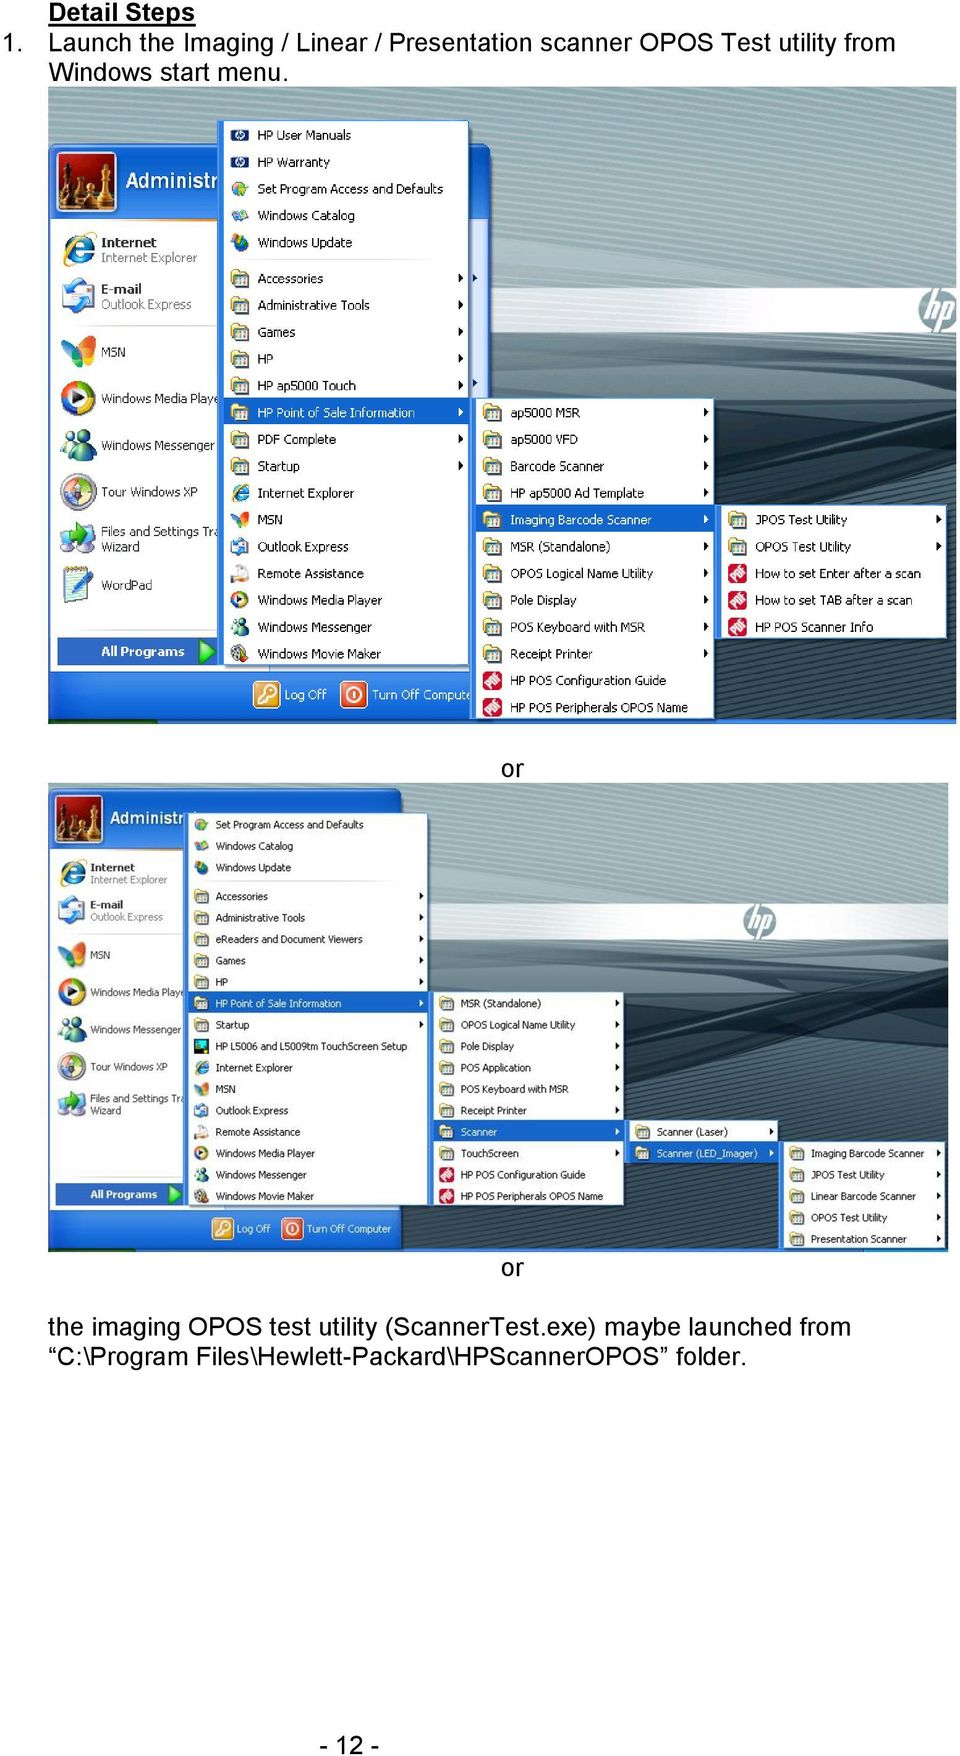 HP OPOS Logical Name Drivers for Windows 7